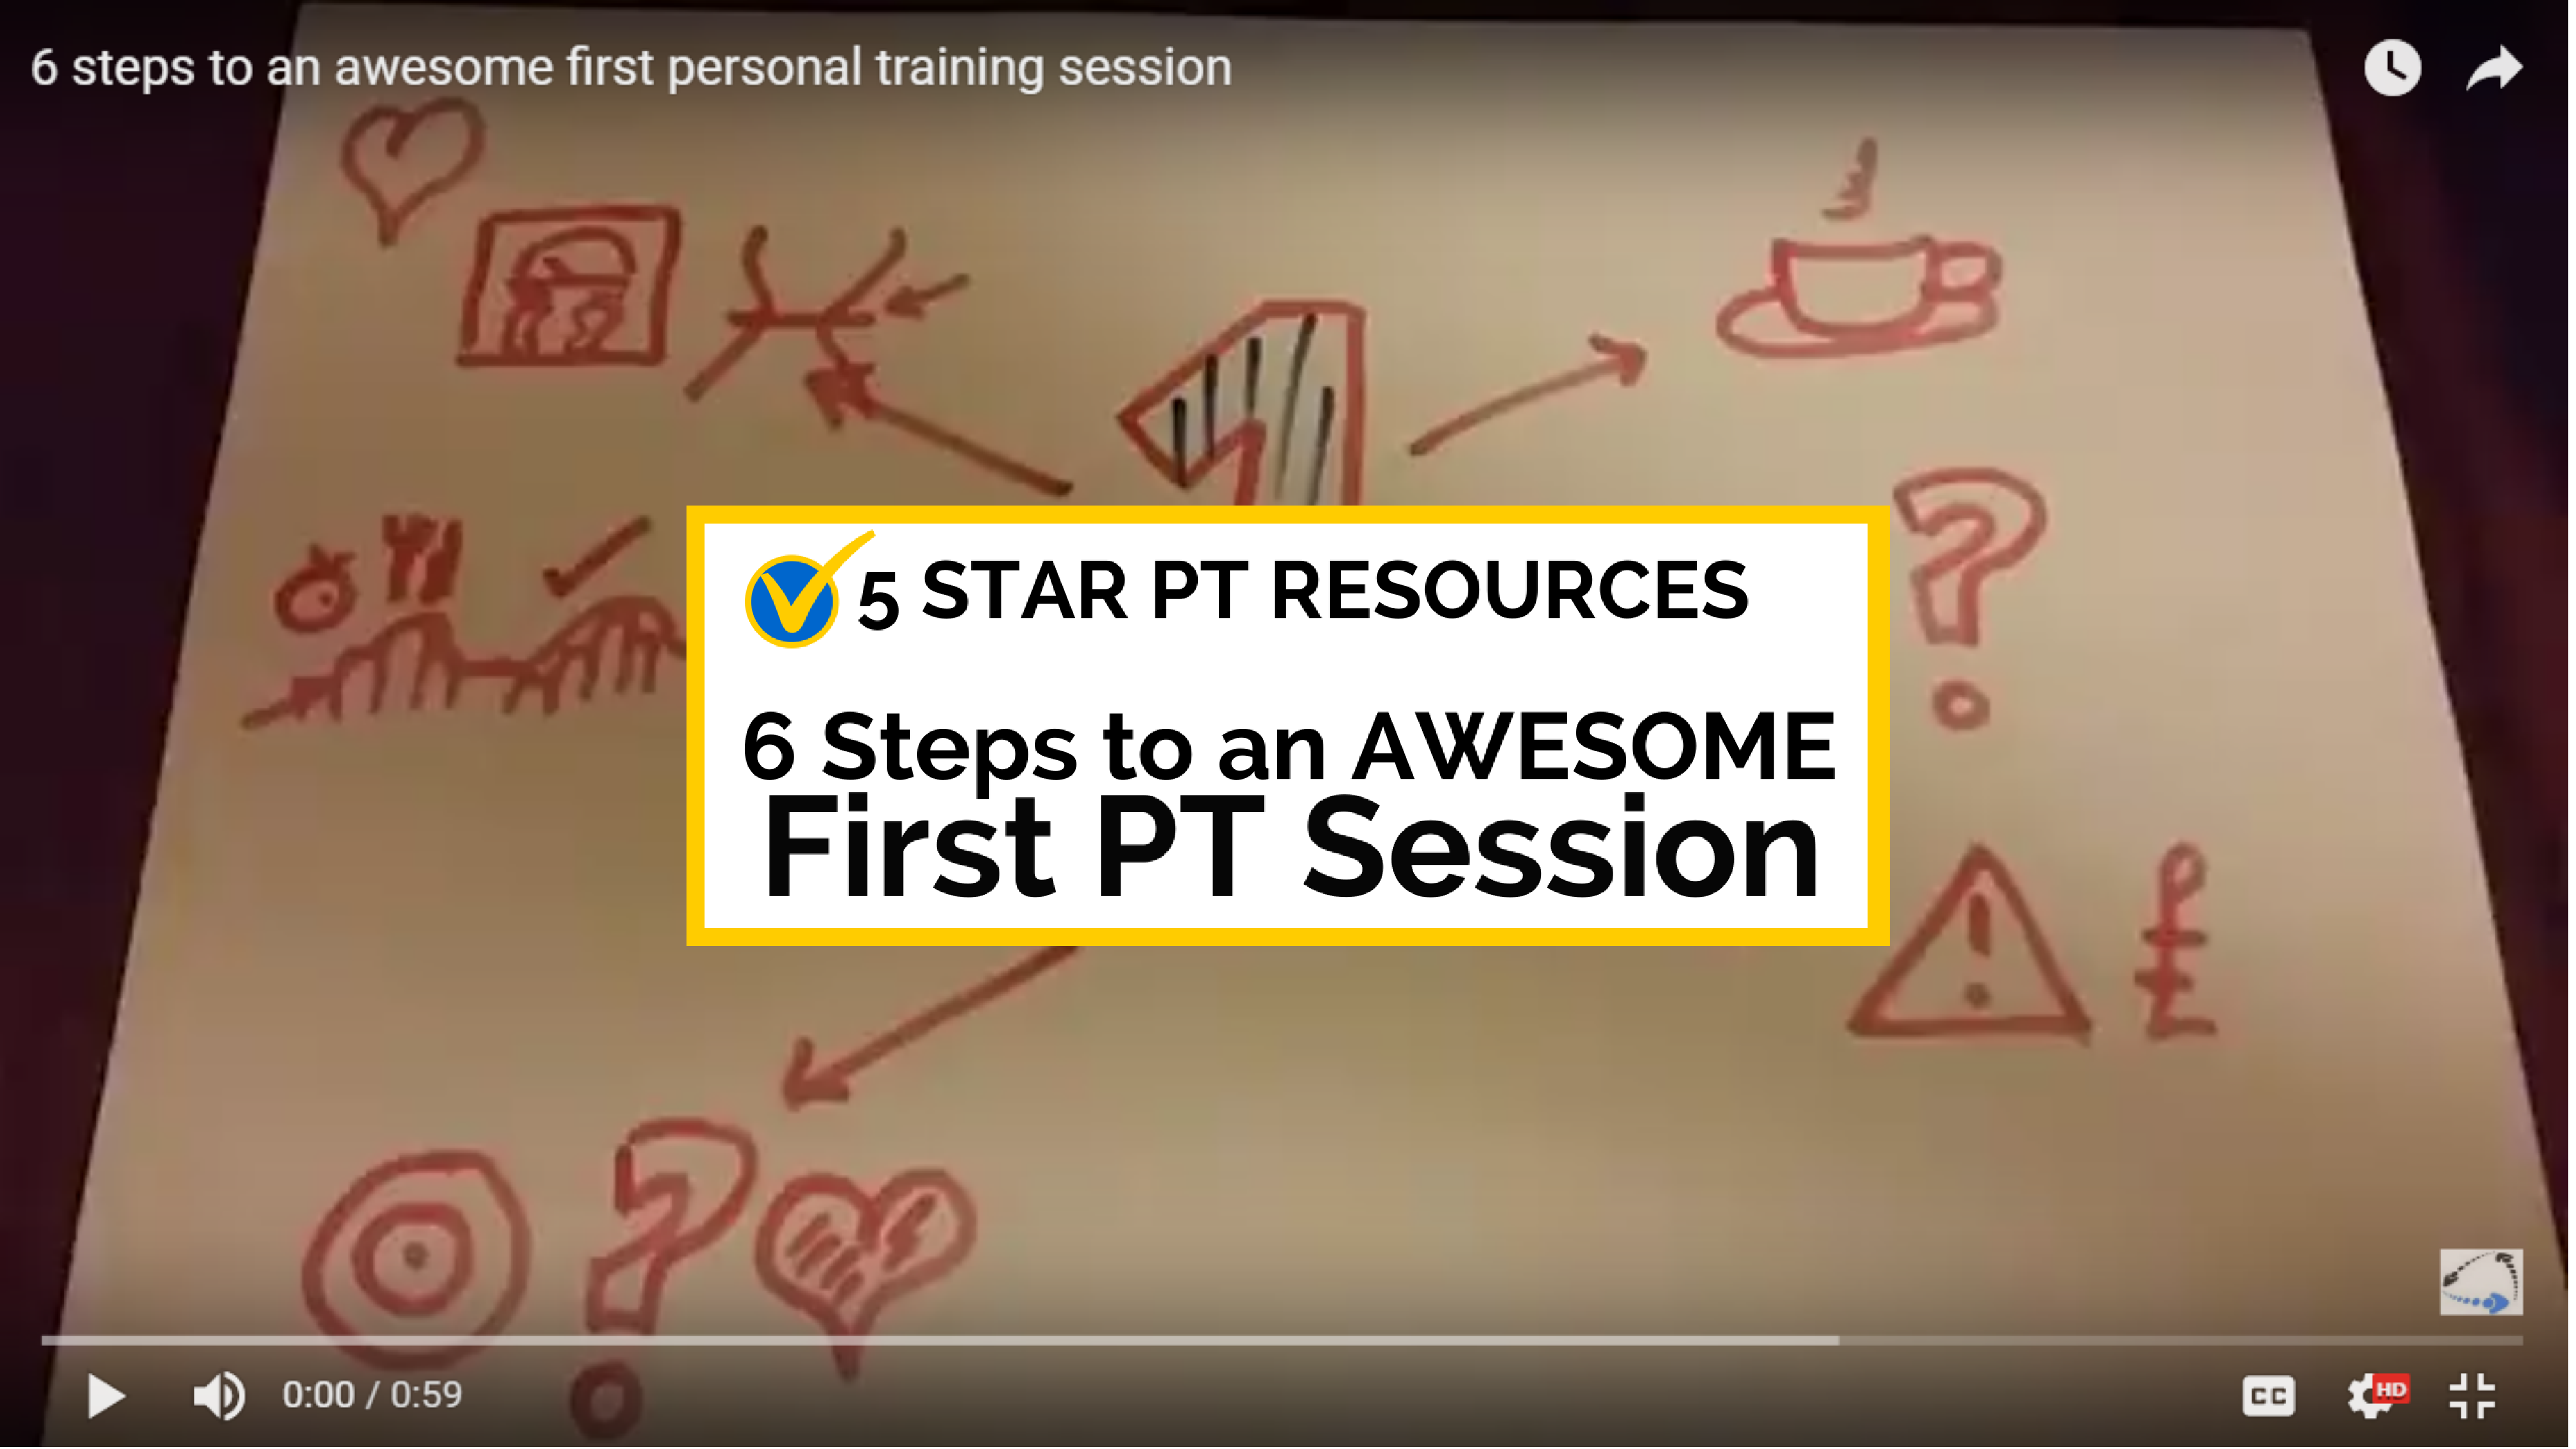 6 steps to an awesome first personal training session